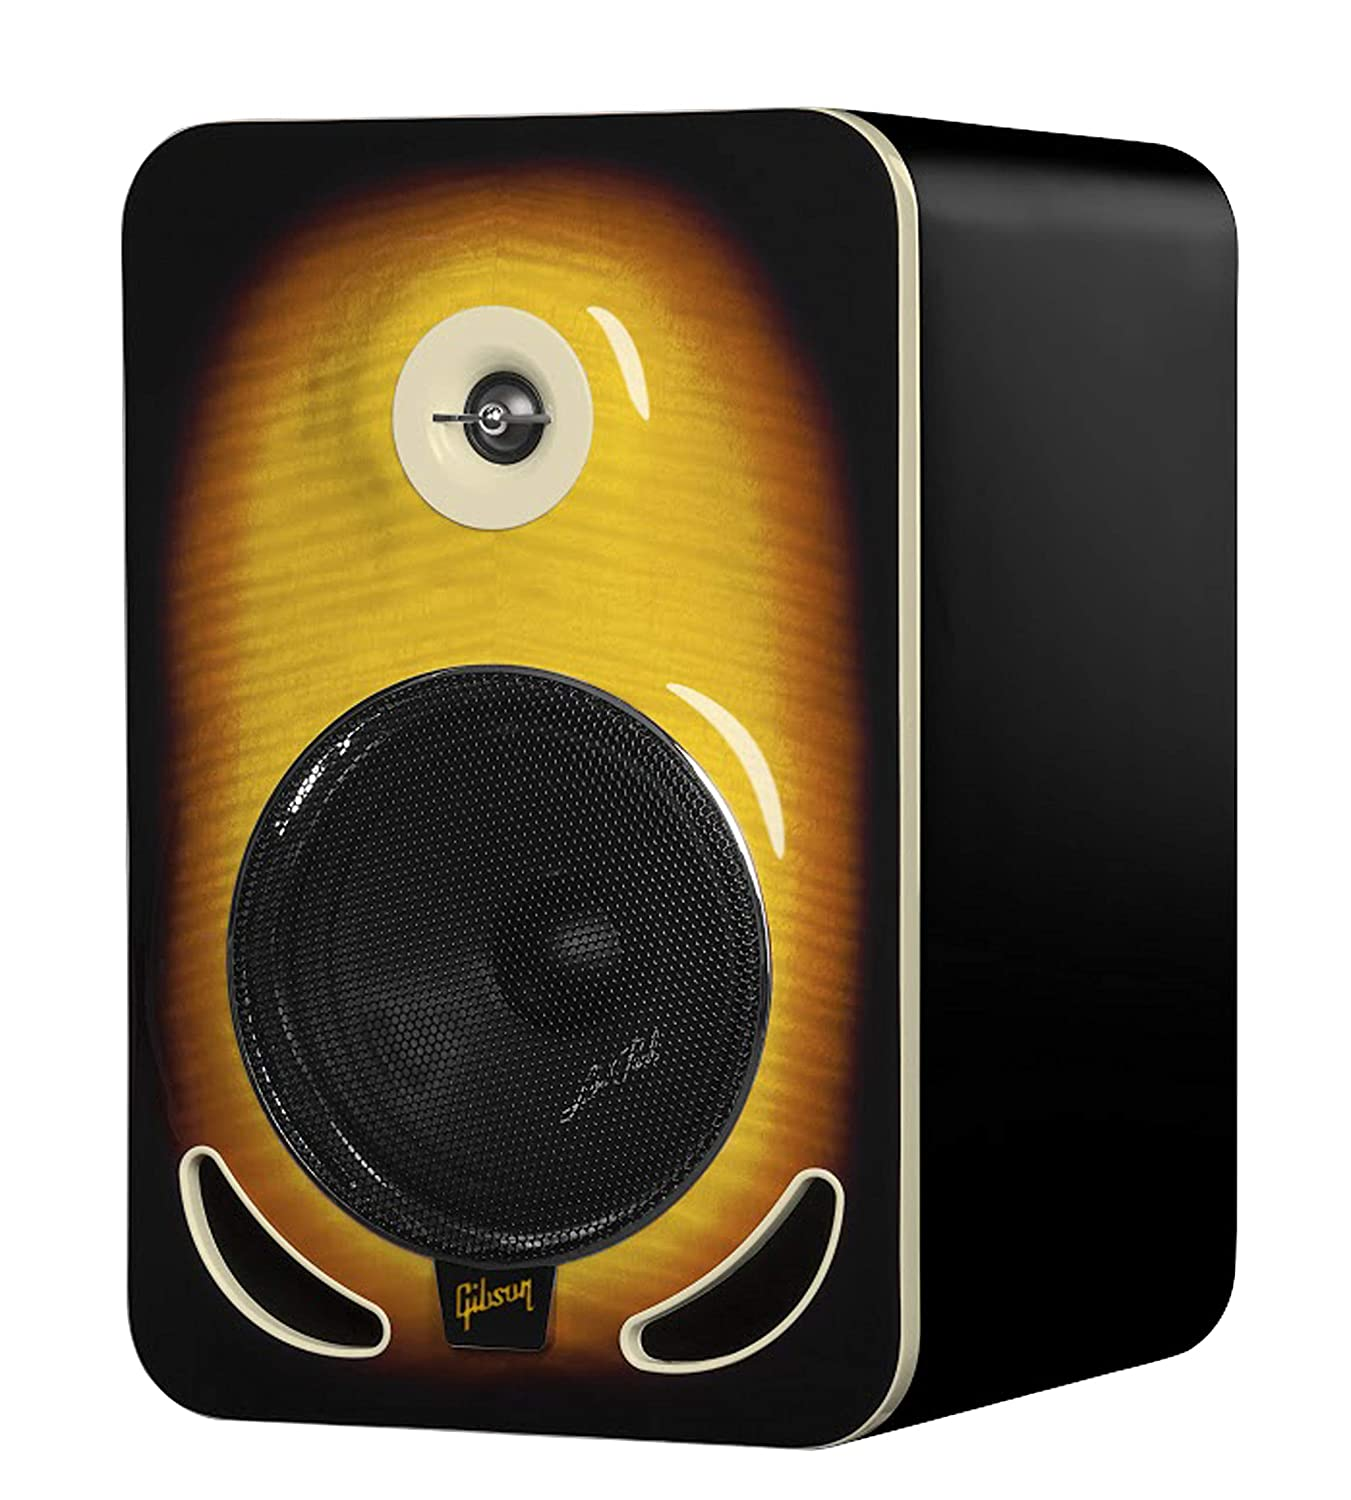 8-Inch LP8TB-NA Gibson Pro Audio Les Paul Reference Studio Monitor Tobacco Burst